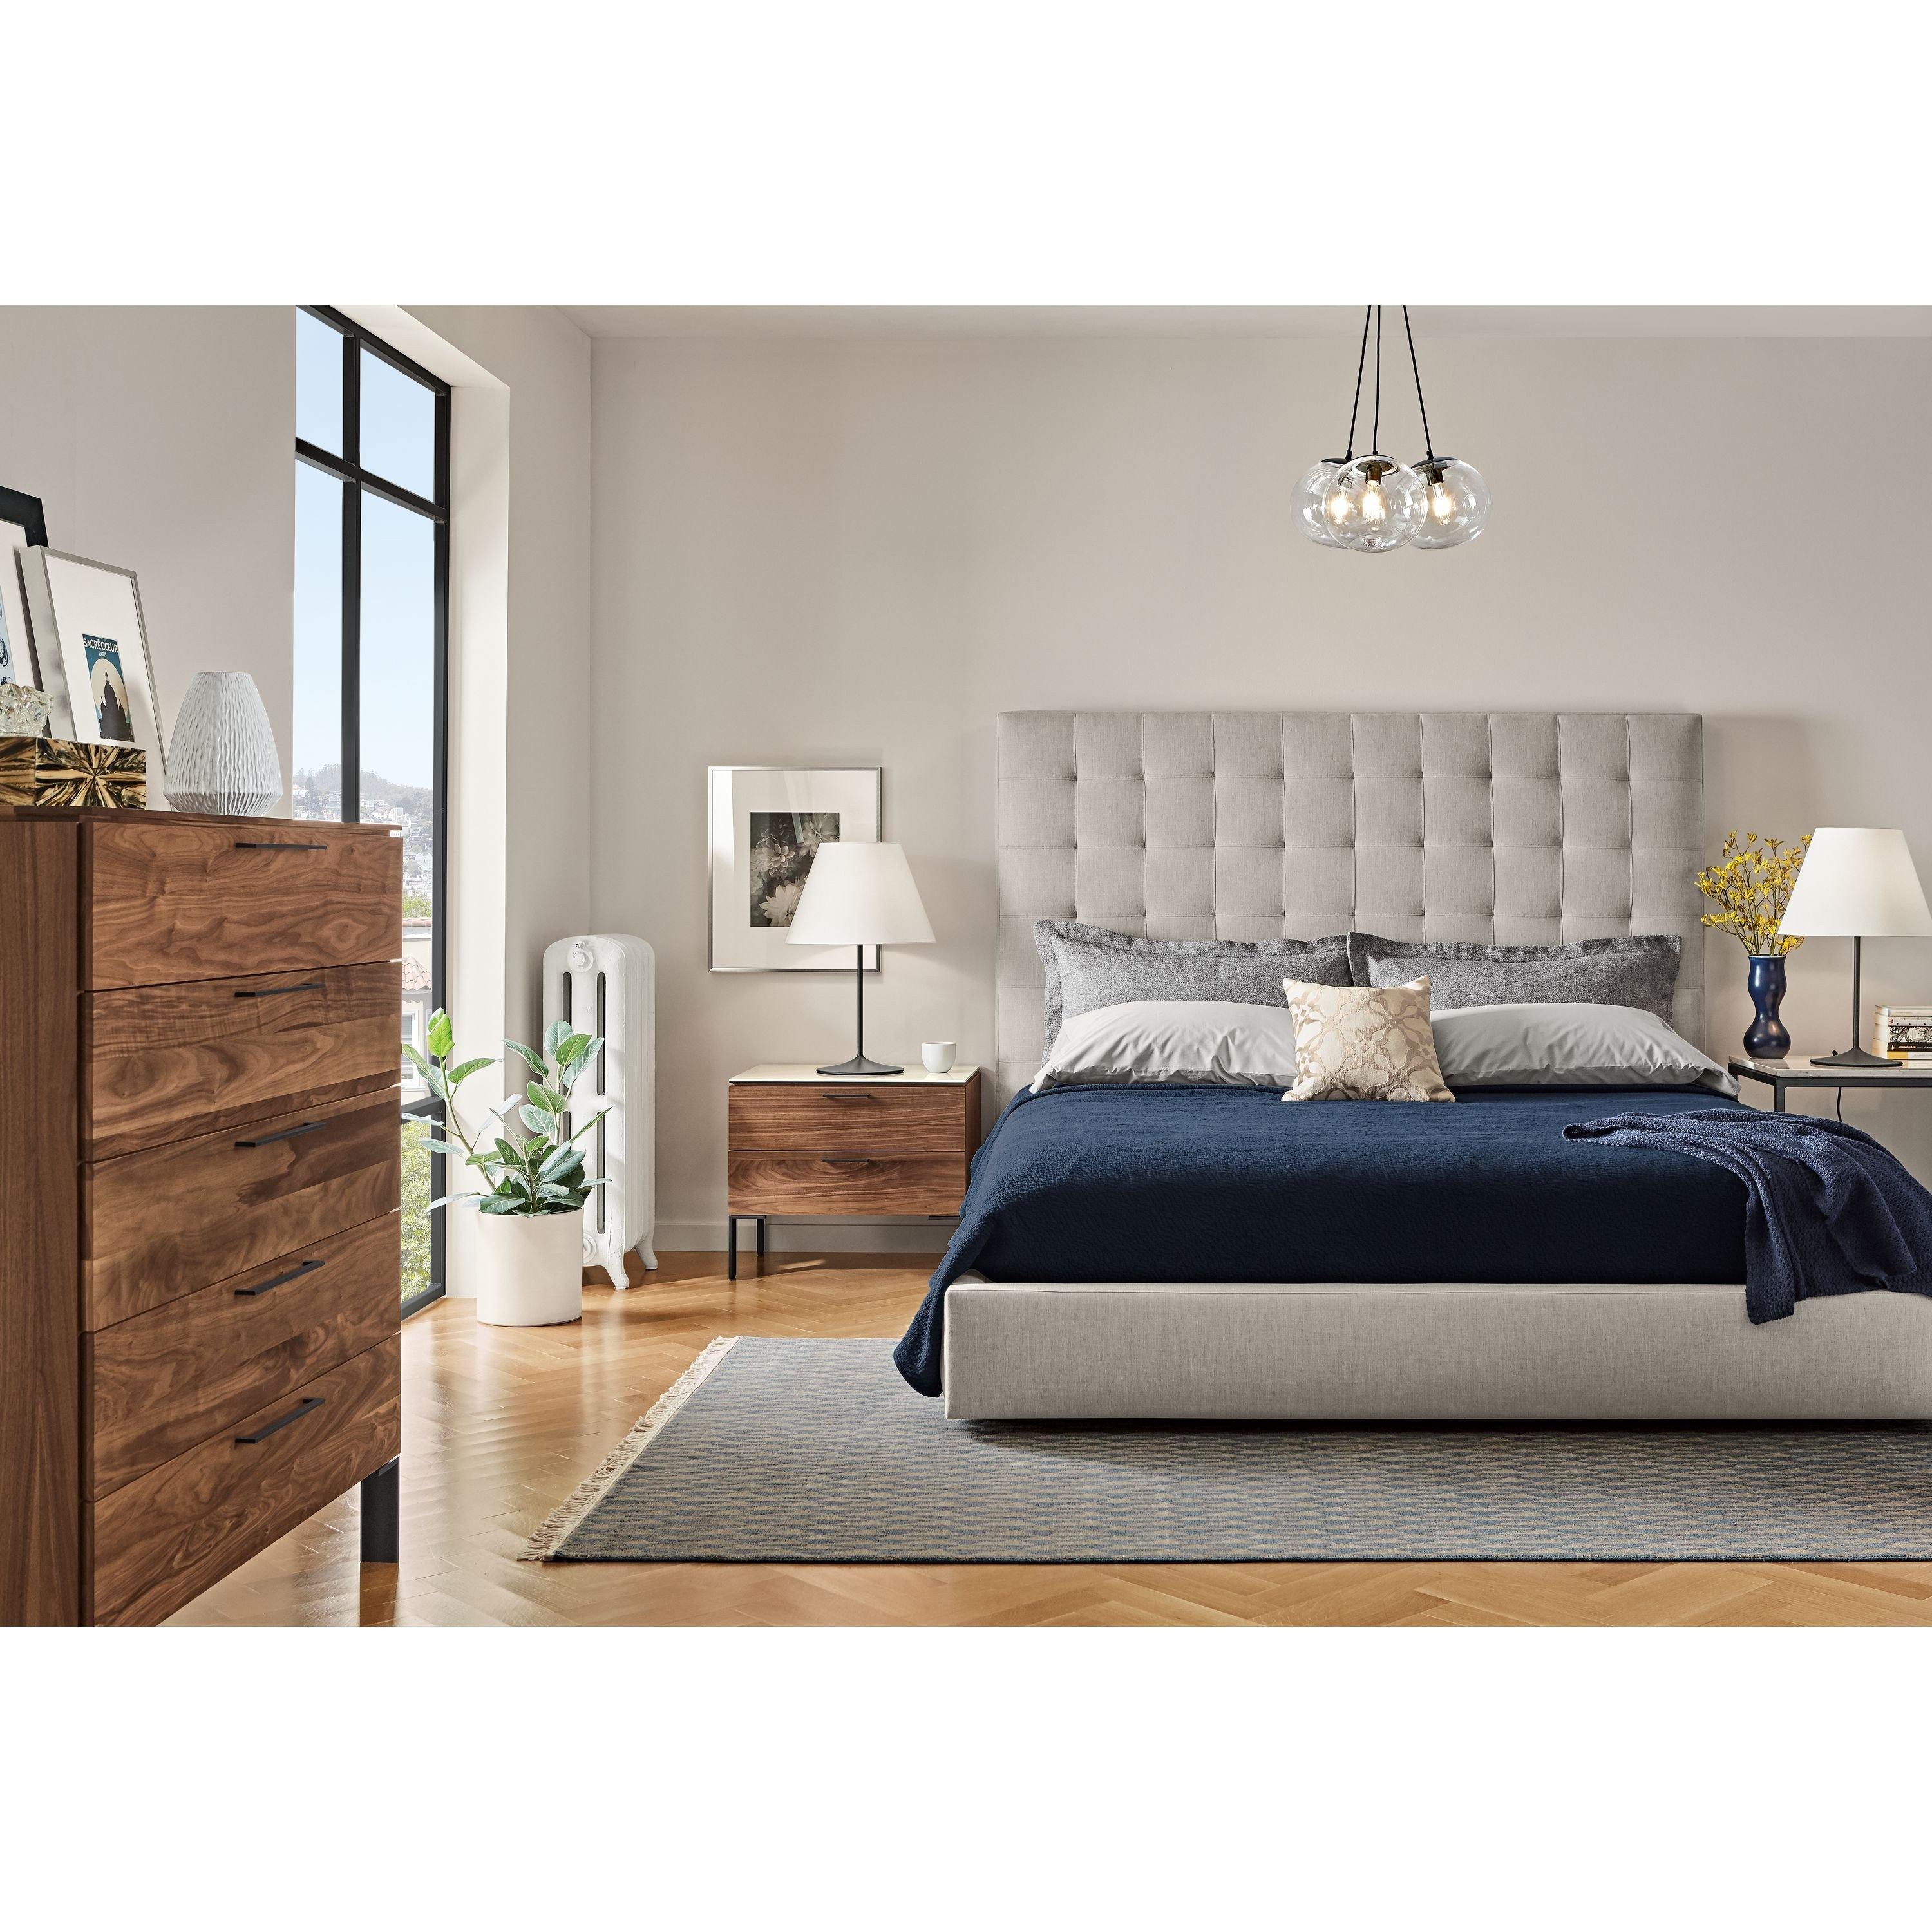 High Quality Bedroom Furniture New soria Modern Table Lamp with Fabric Shade Modern Bedroom